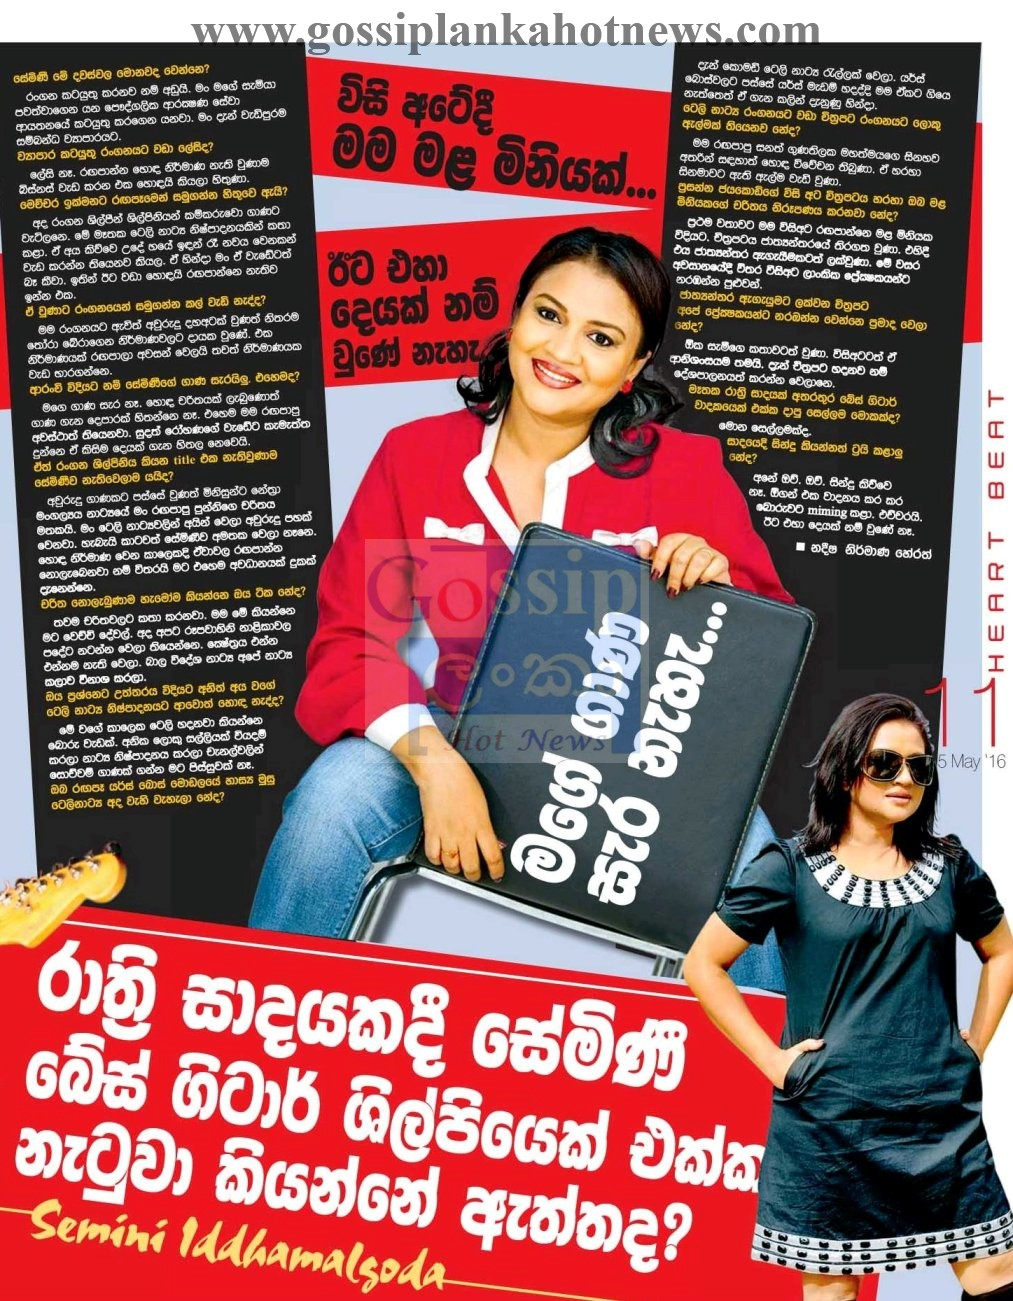 Semini Iddamalgoda Interview